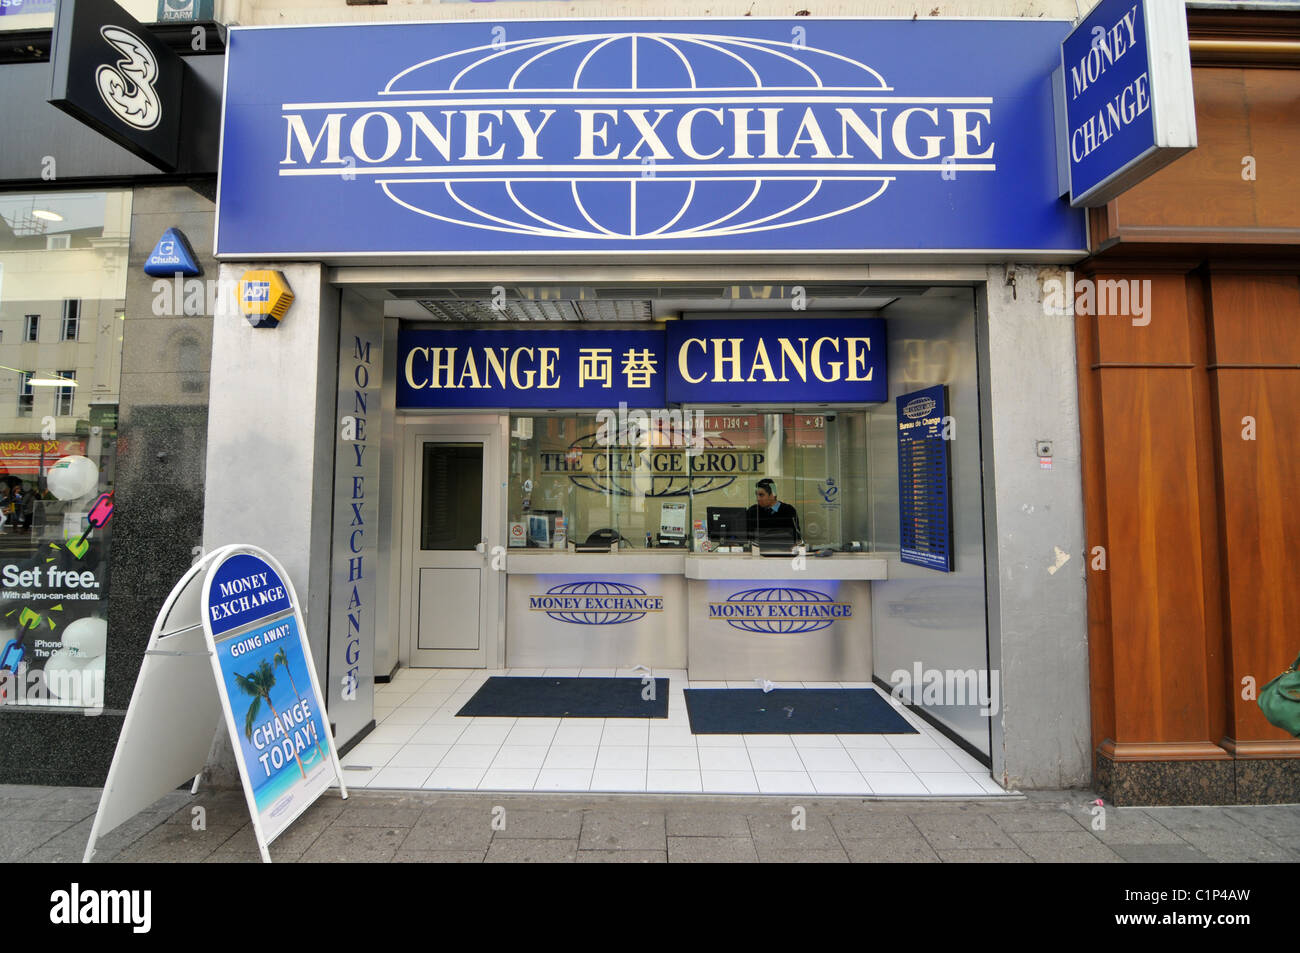 money exchange cambio bureau de change travel cash money stock photo royalty free image